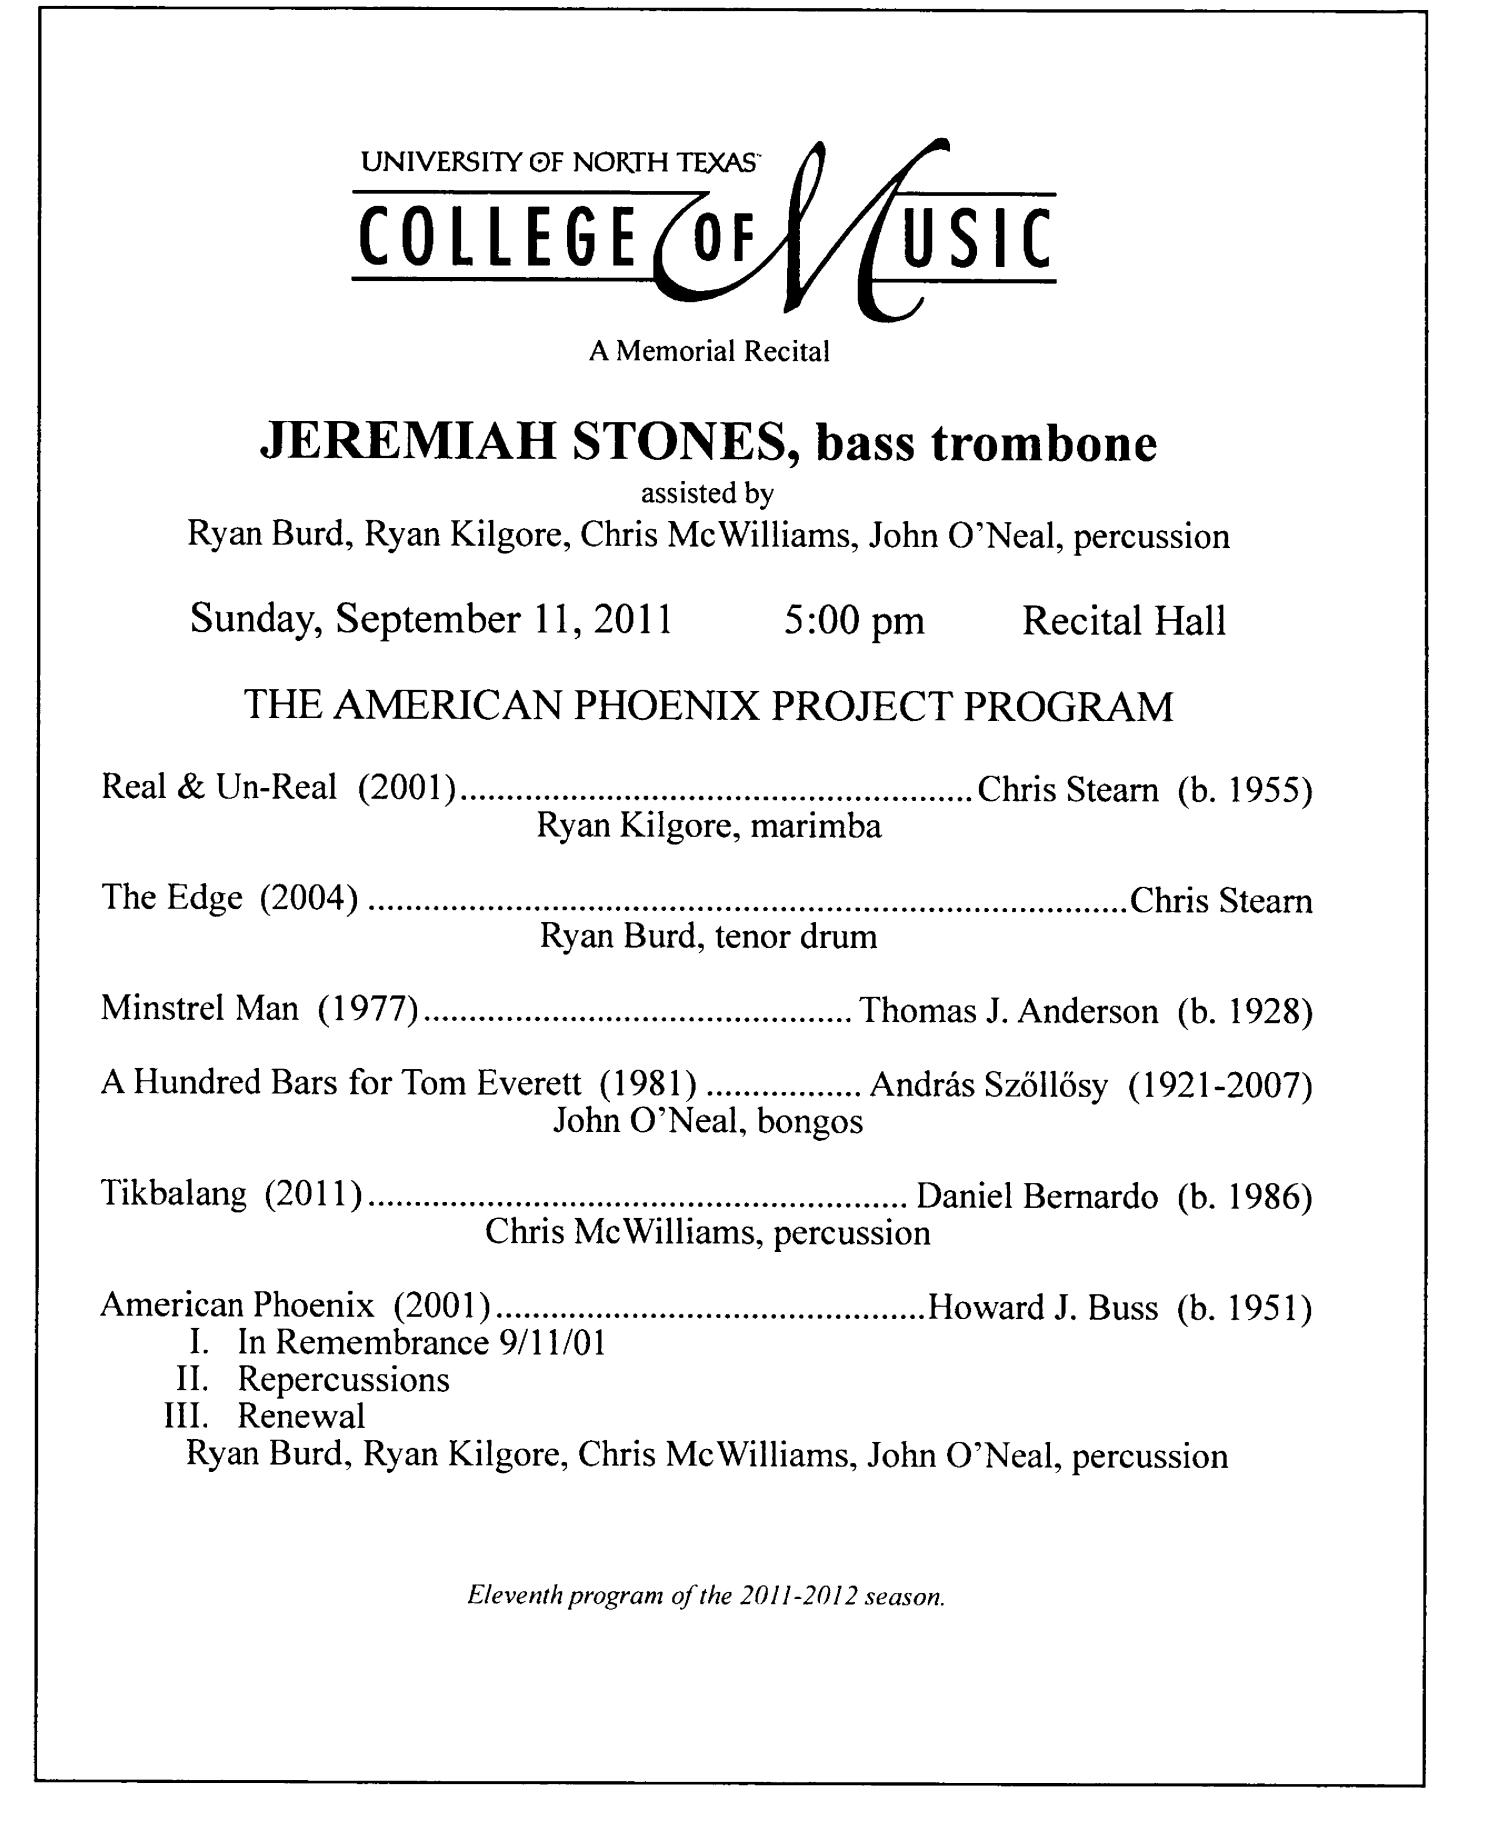 College of Music Program Book 2011-2012: Student Performances, Volume 1                                                                                                      4